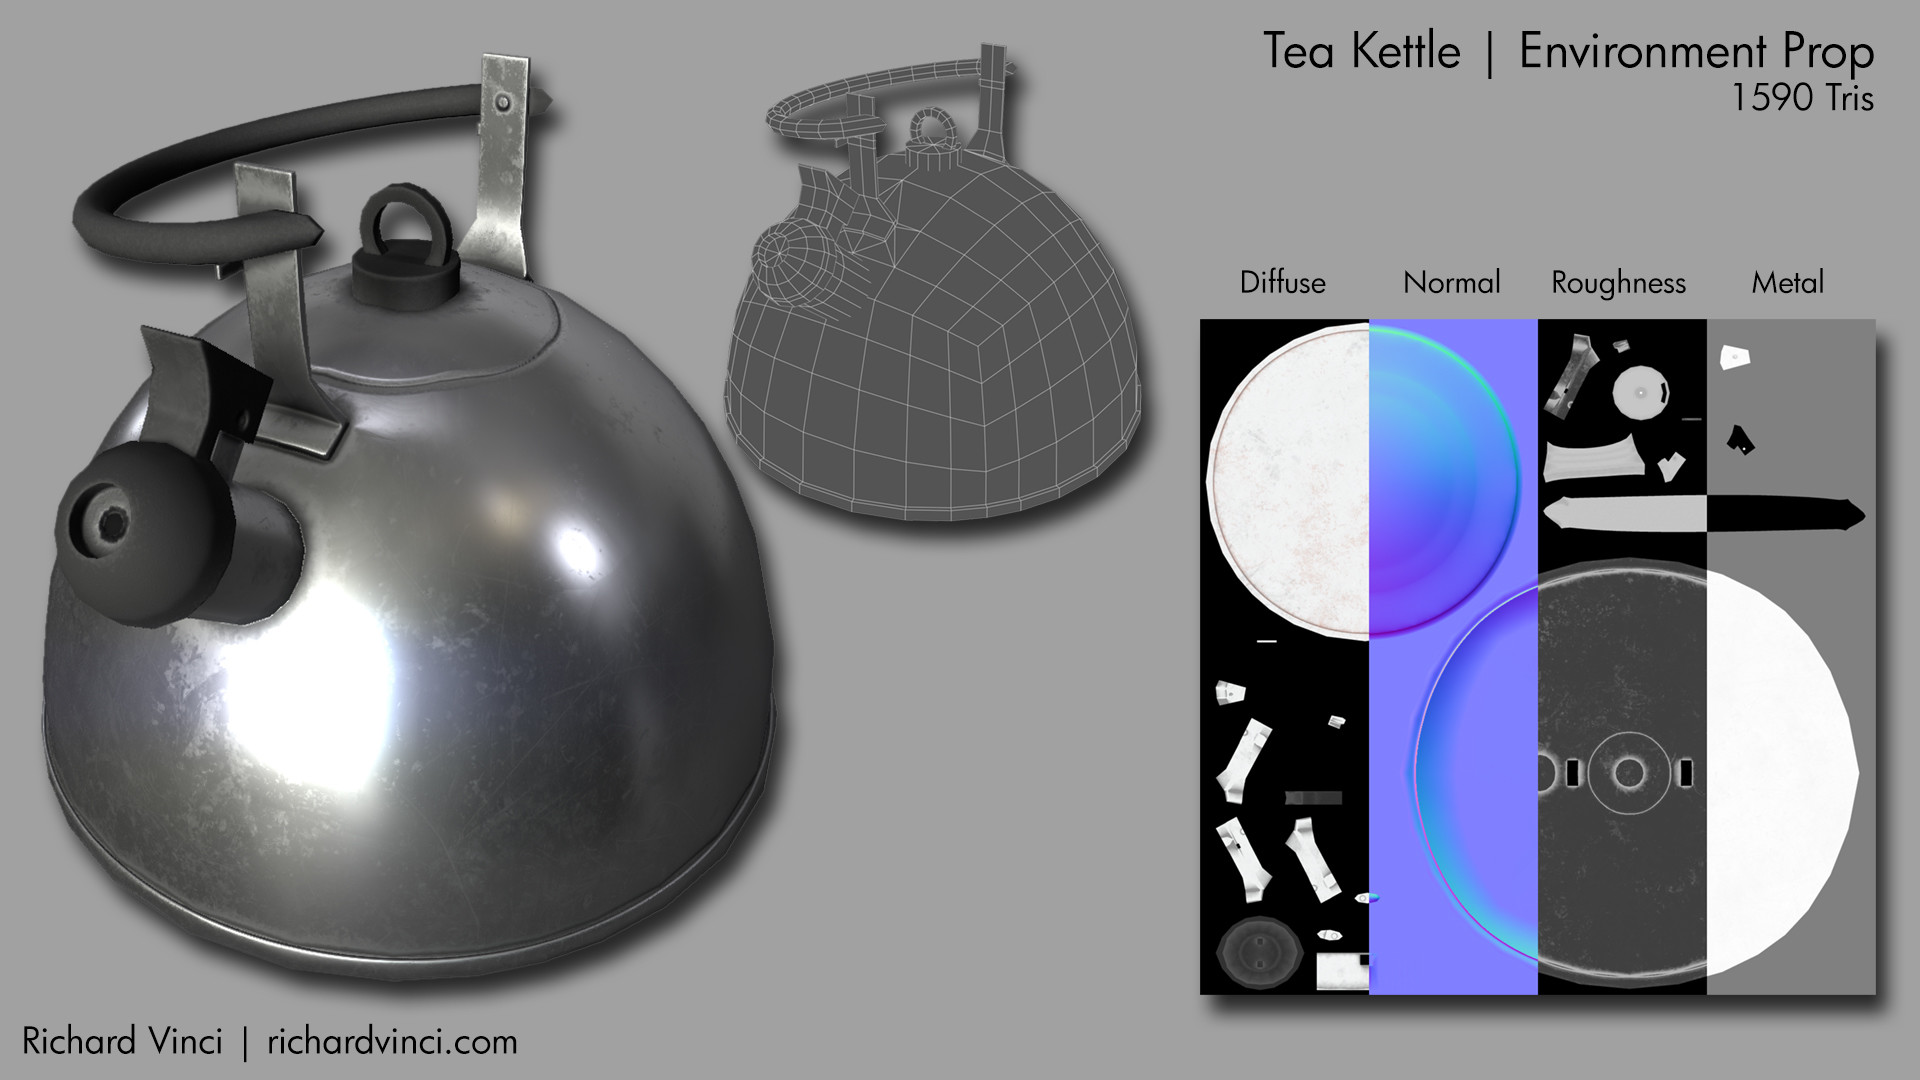 Richard vinci kettle tex breakdown